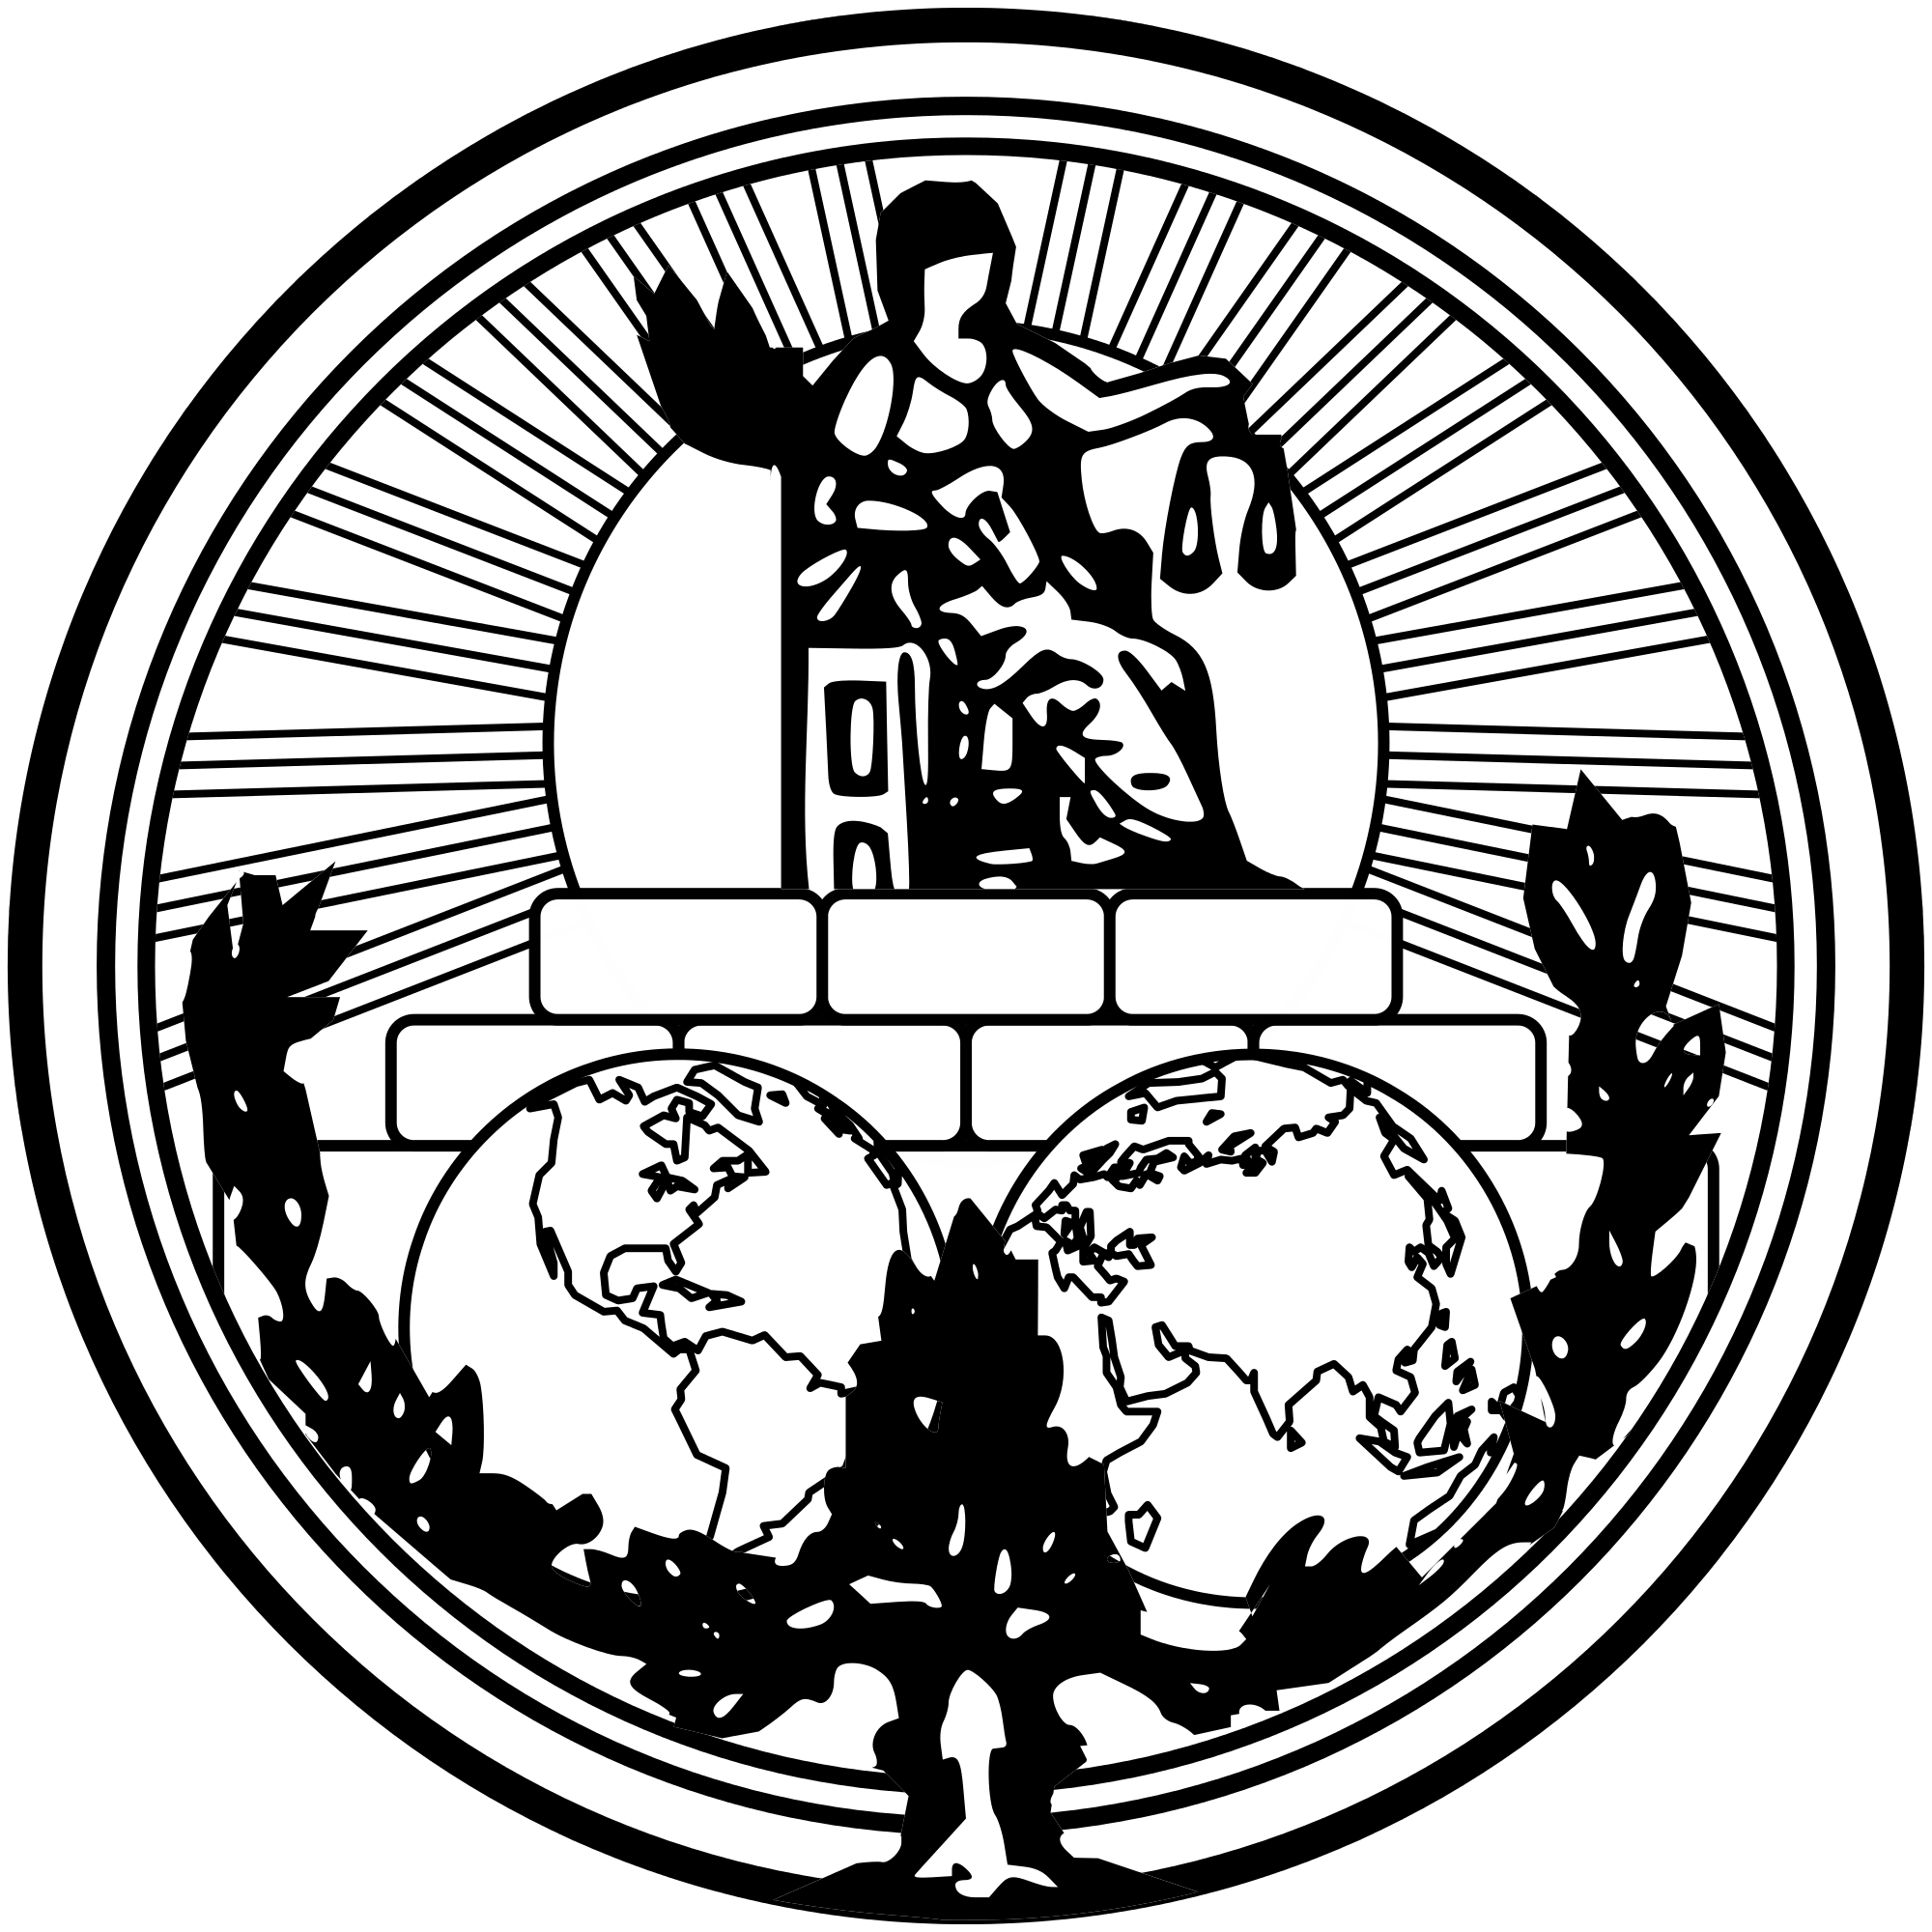 ICJ Logo - Richter des Internationalen Gerichtshofs